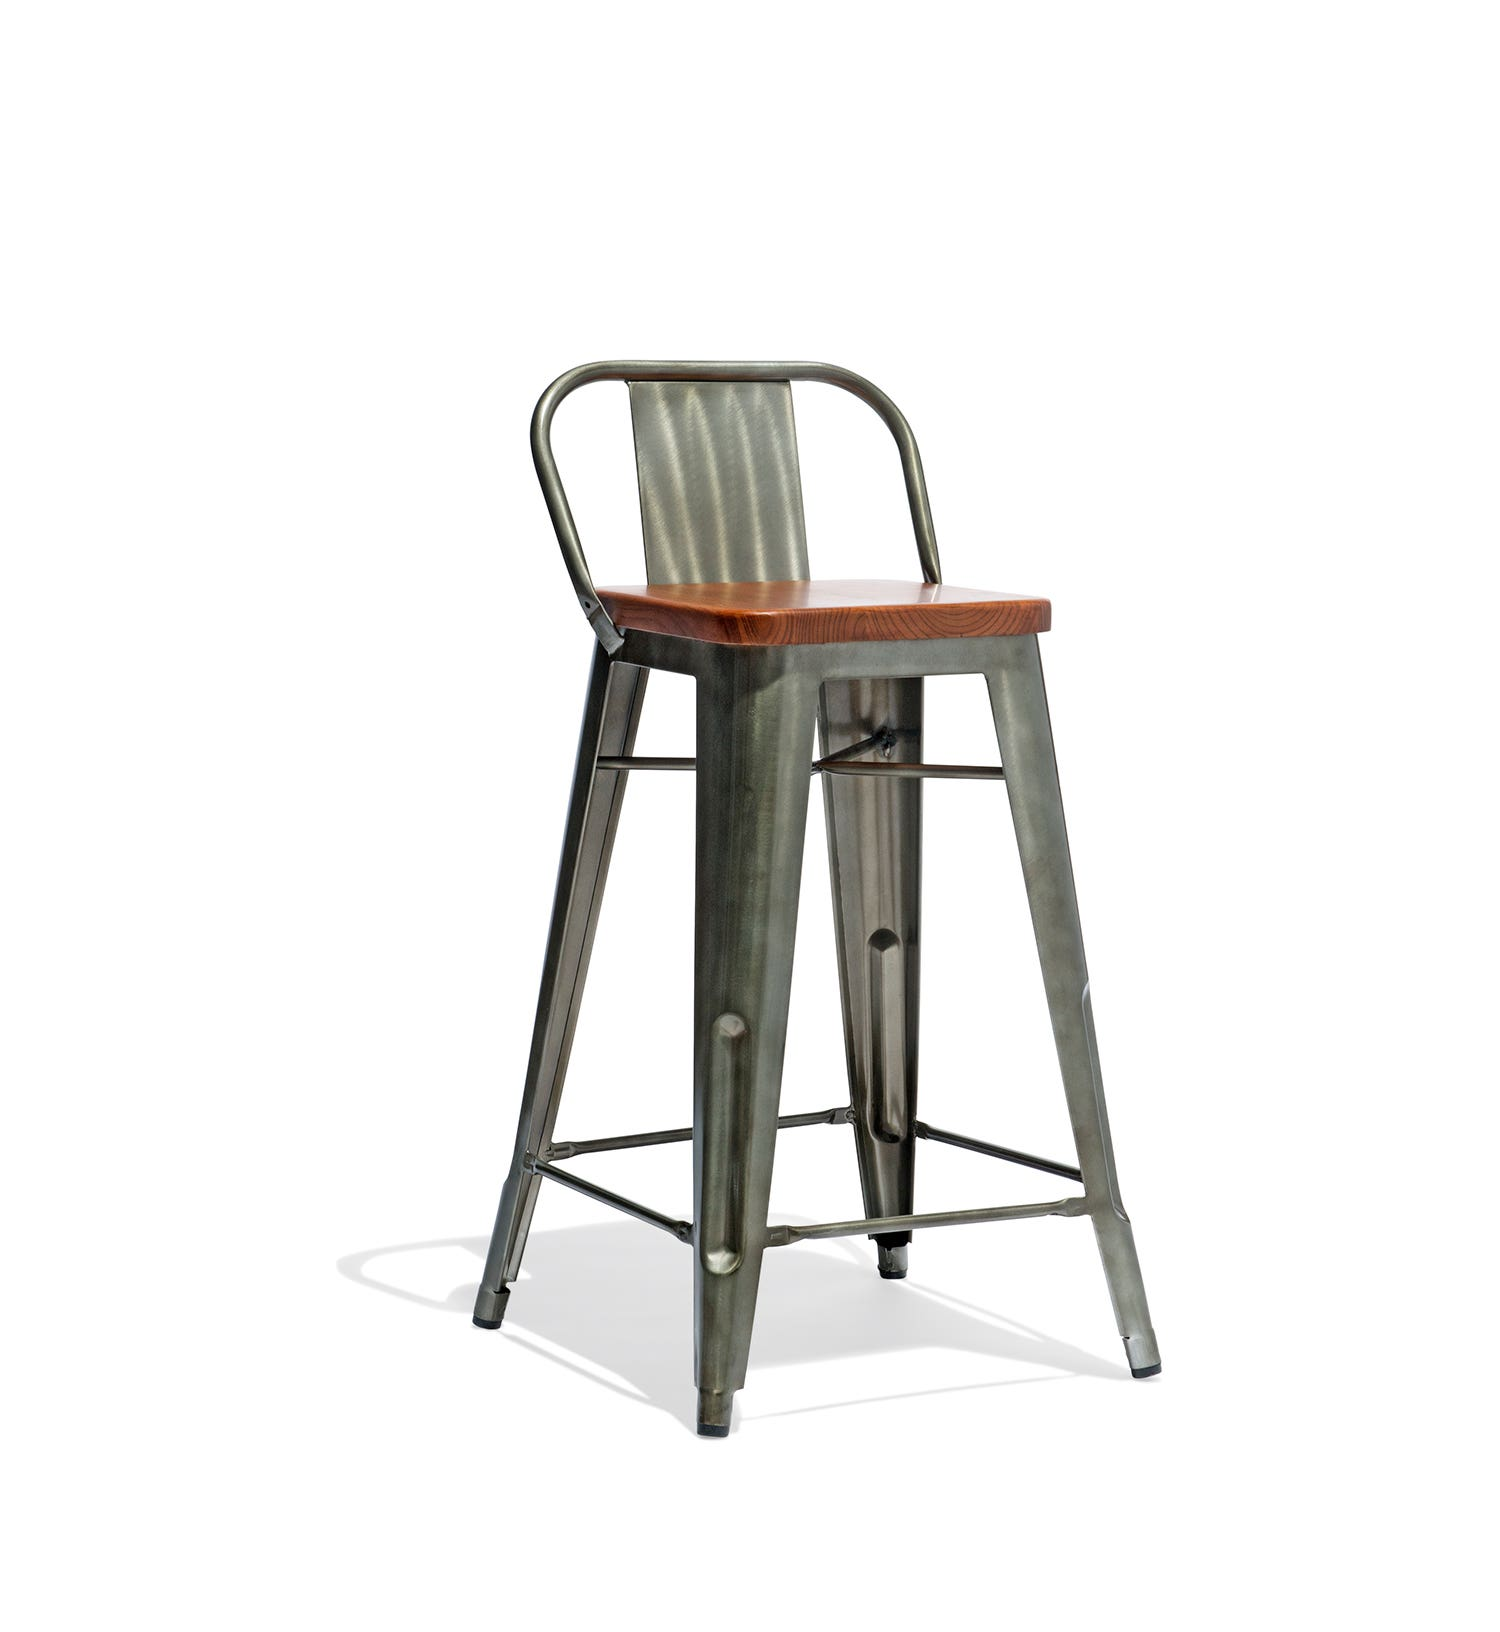 Super Low Back Counter Stool With A Wood Seat Andrewgaddart Wooden Chair Designs For Living Room Andrewgaddartcom